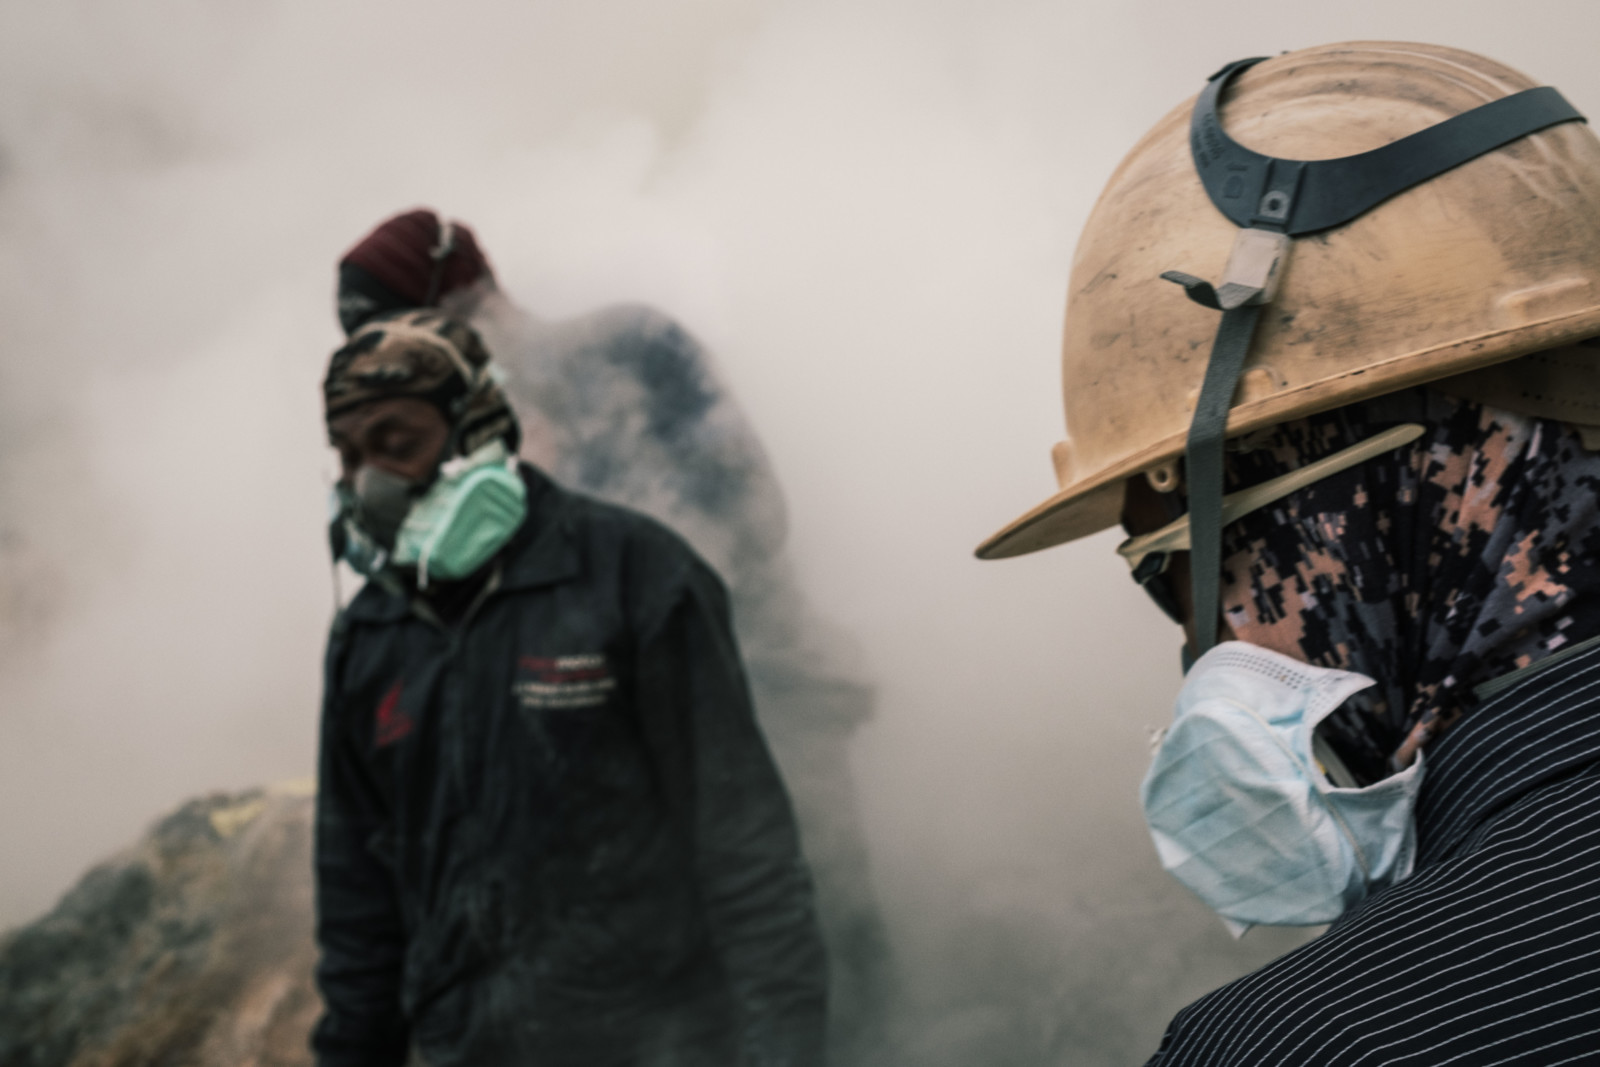 Shooting in Toxic Sulfur Dust